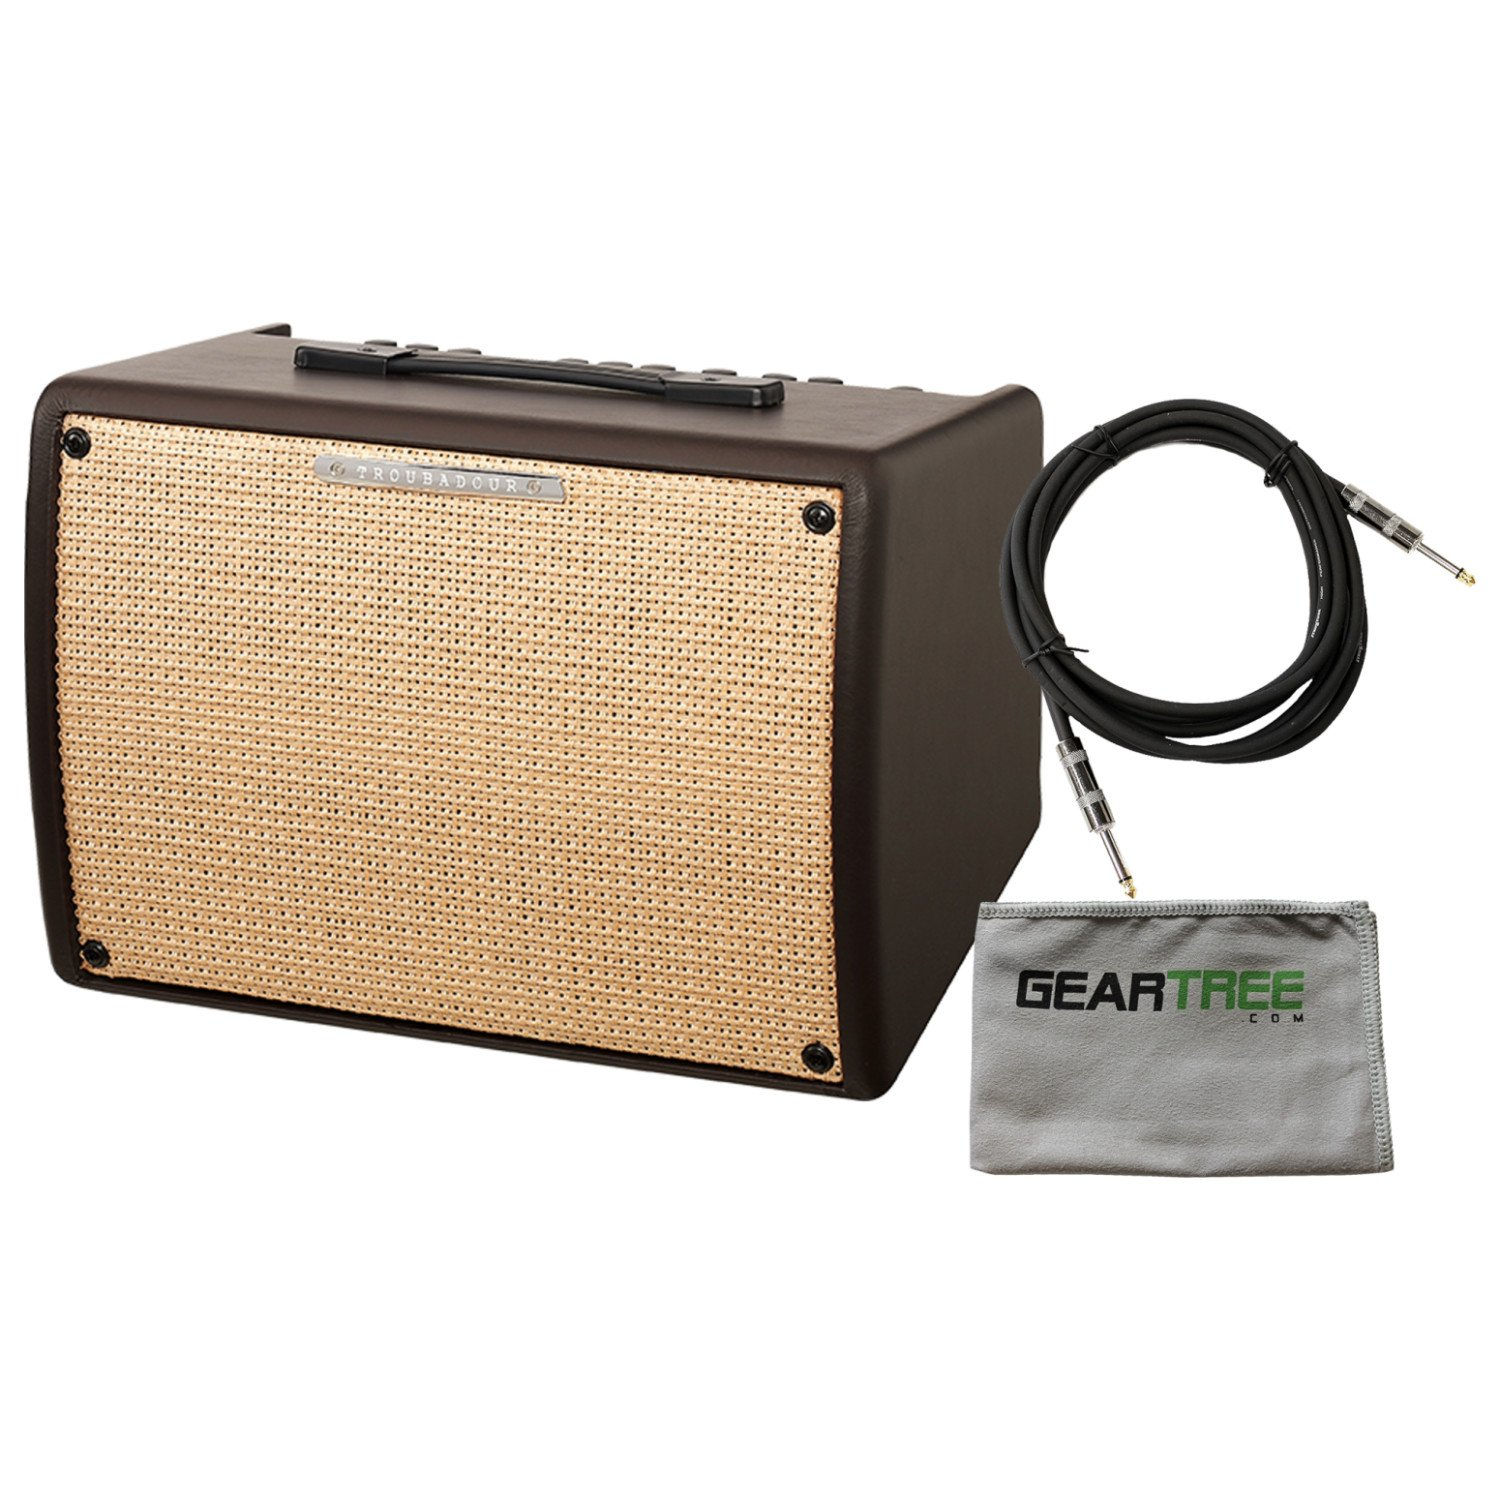 Ibanez T30II Troubadour II Acoustic Guitar Combo Amplifier Brown - 30 Watt w/ Cable and Polish Cloth by Ibanez